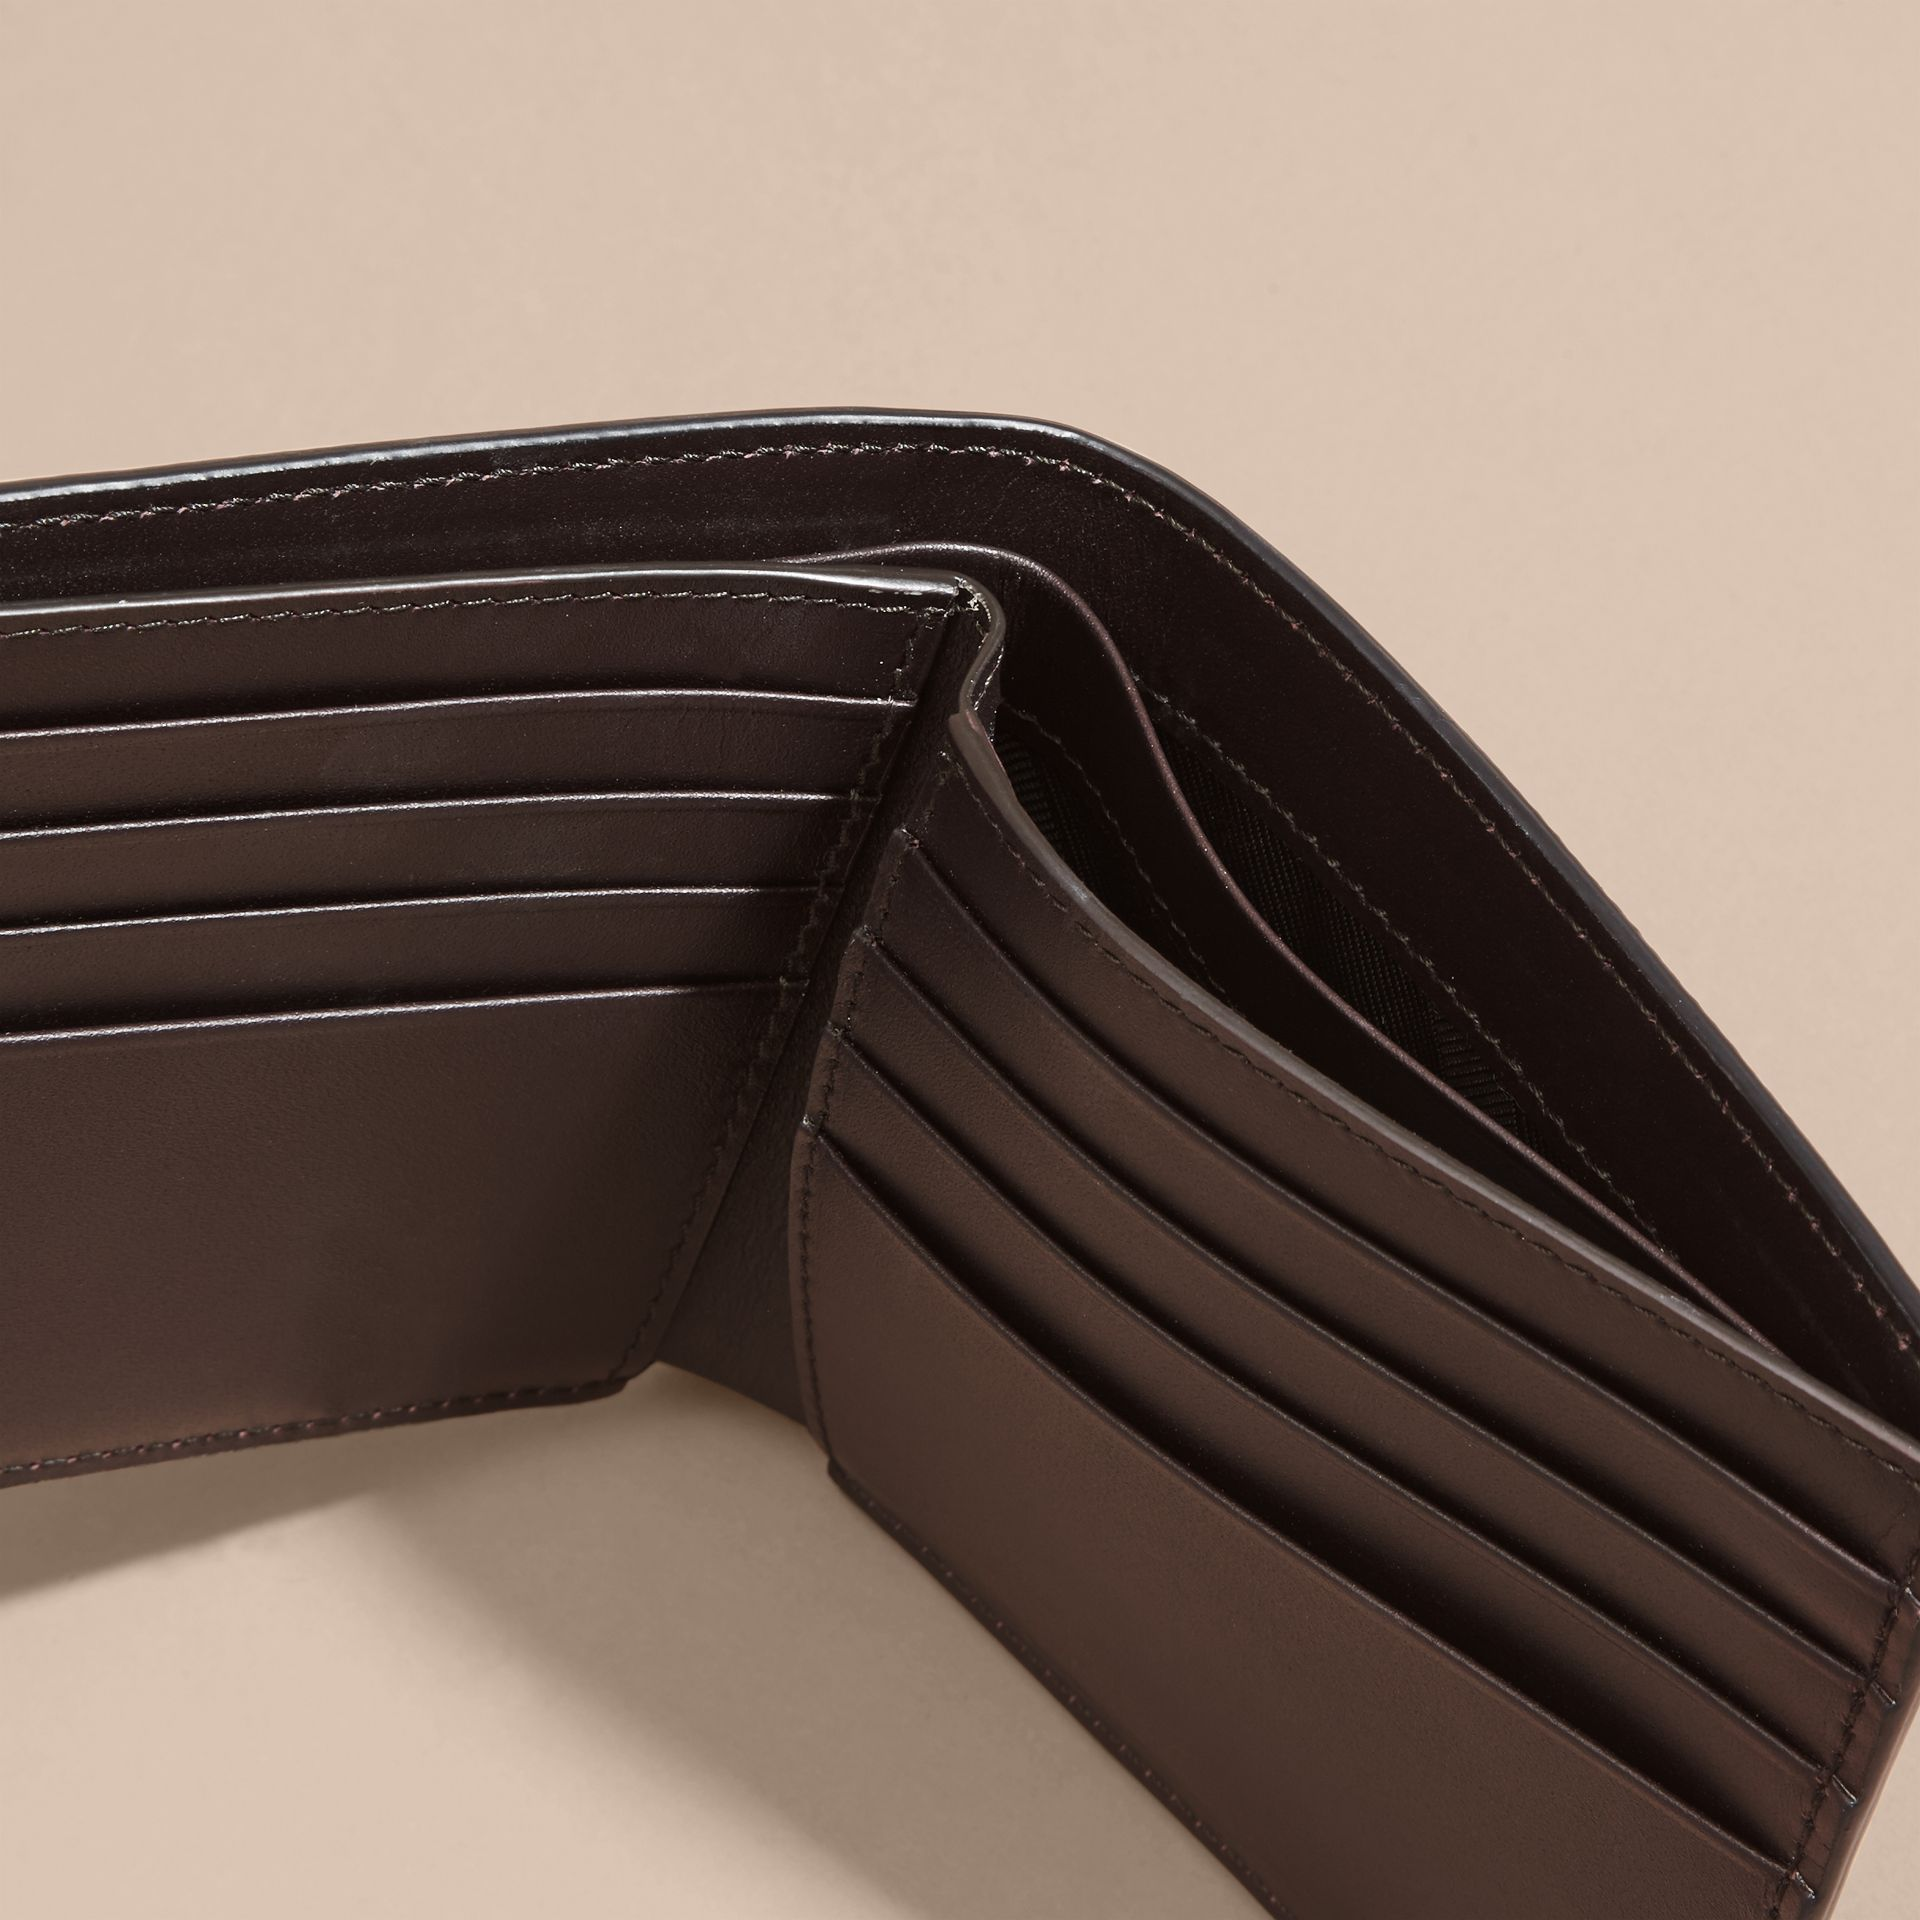 Border Detail London Leather Folding Wallet Dark Navy - gallery image 5